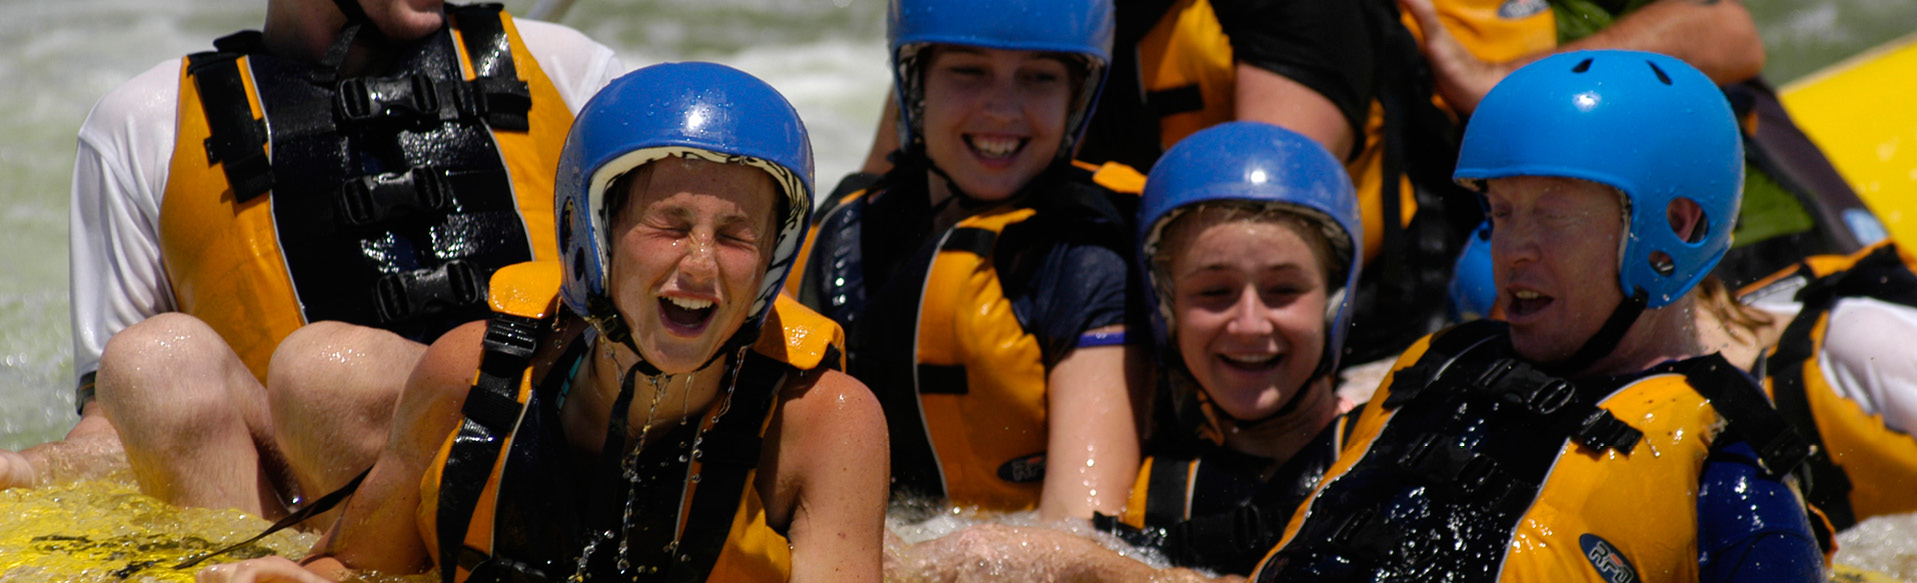 A group of young girls in a raft sailing down a wild white water river with safety gear on